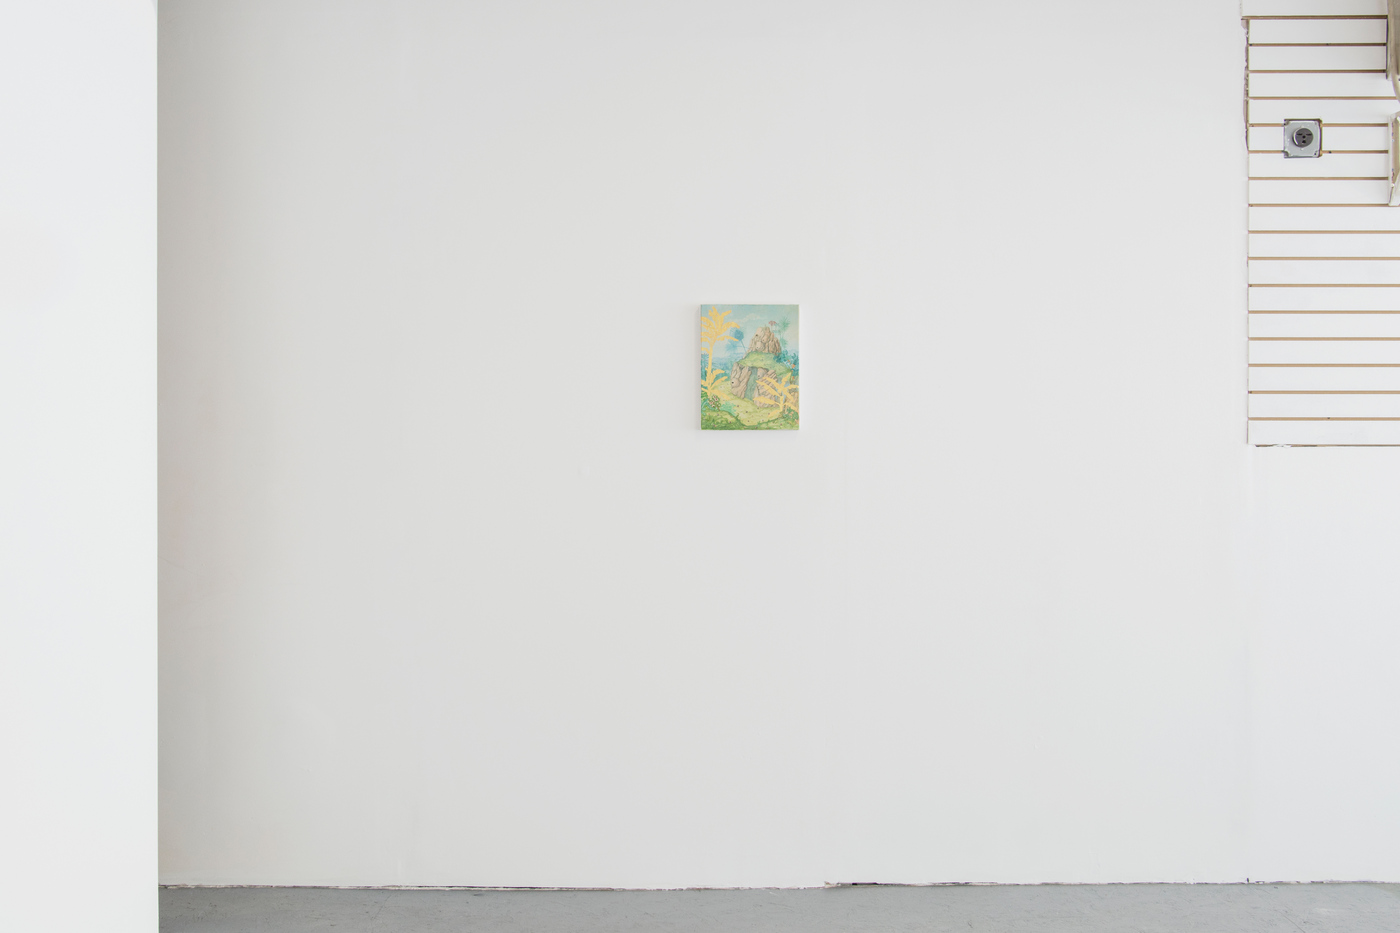 012 Installation View